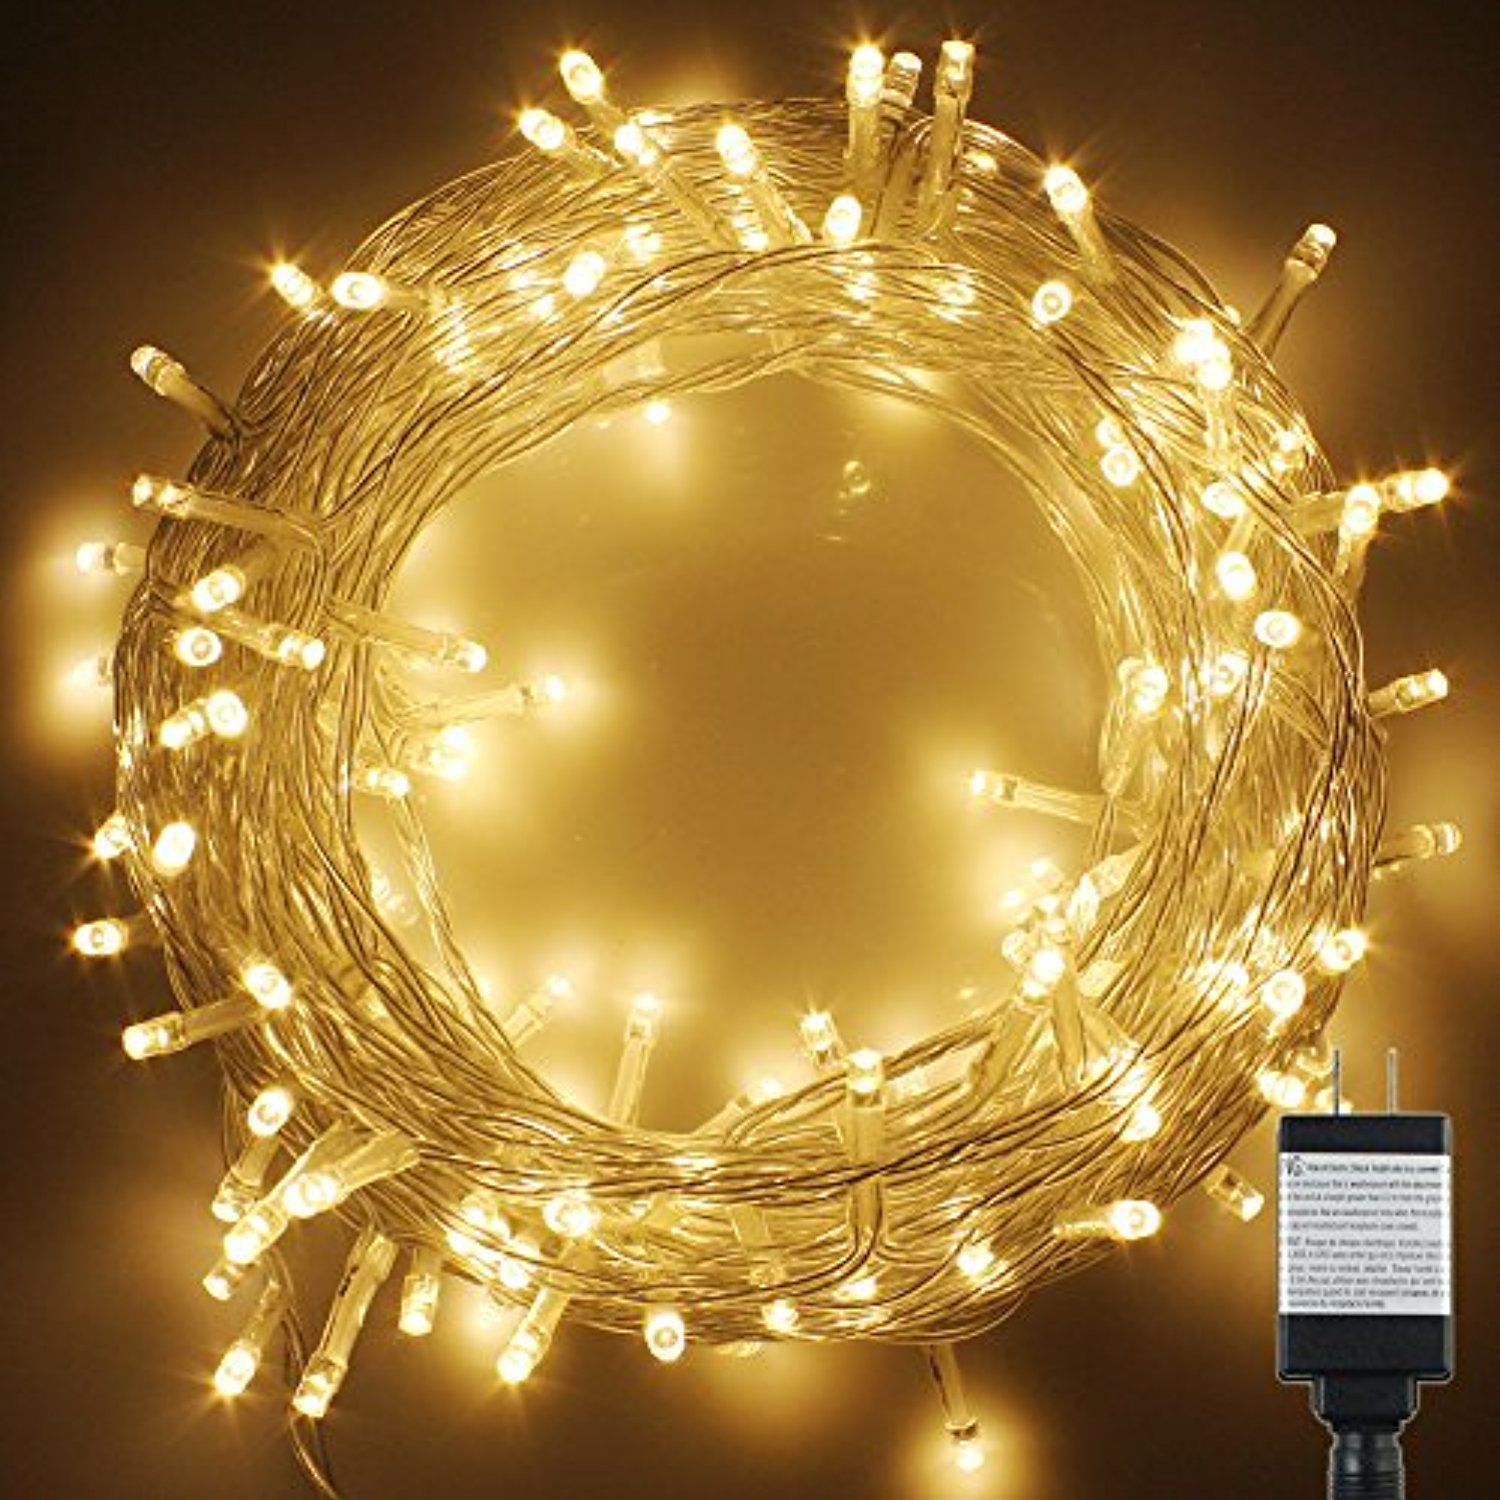 pms 400 led string fairy lights on clear cable with 8 light effects low voltage transformer included ul listed ideal for christmas xmas partywedding